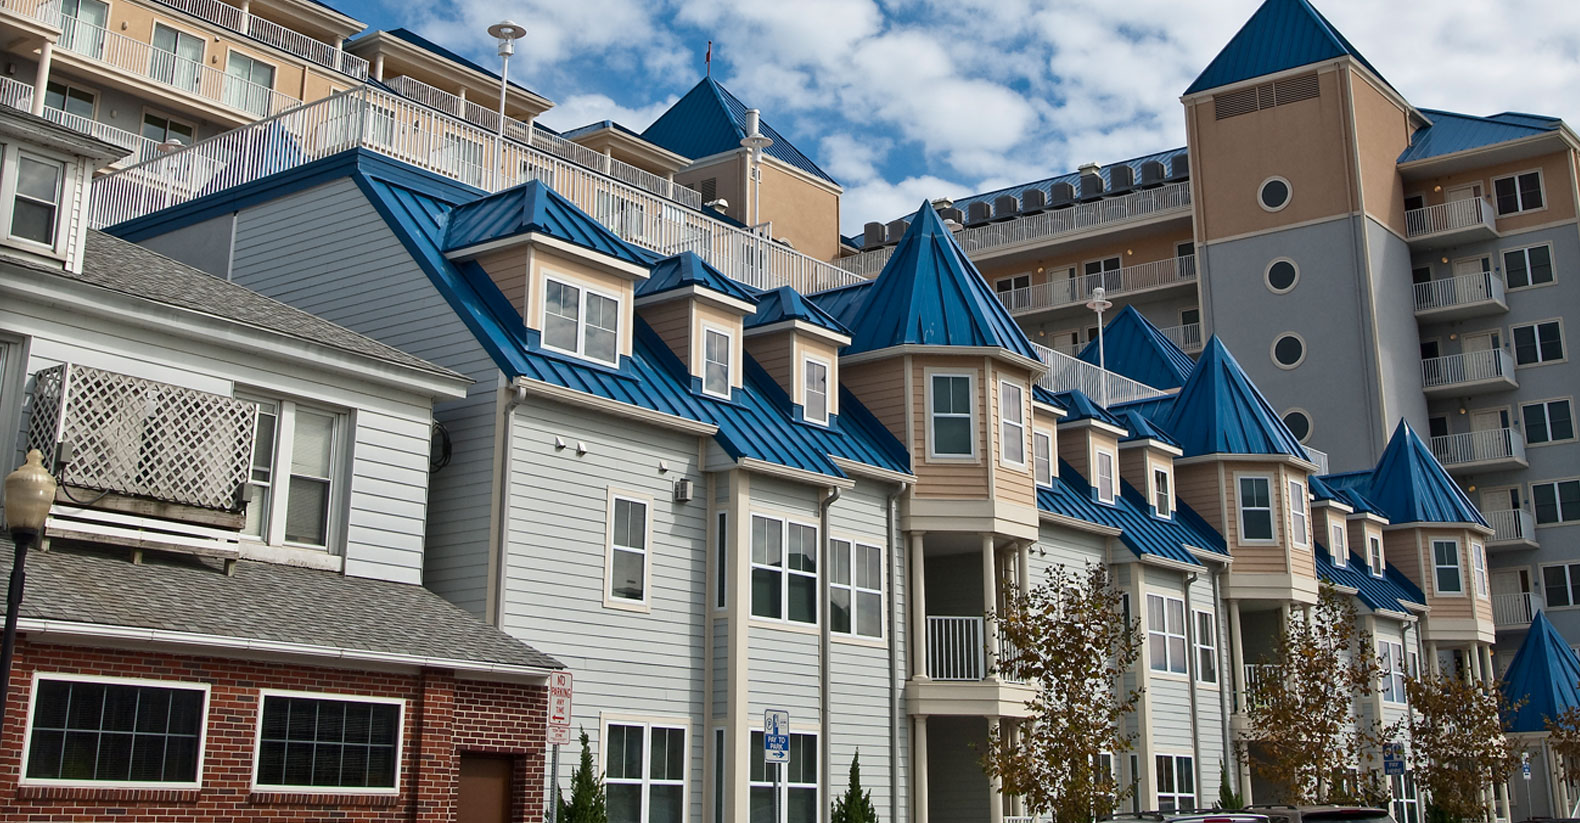 Smaller condominiums with roof access next to a much larger condominium building